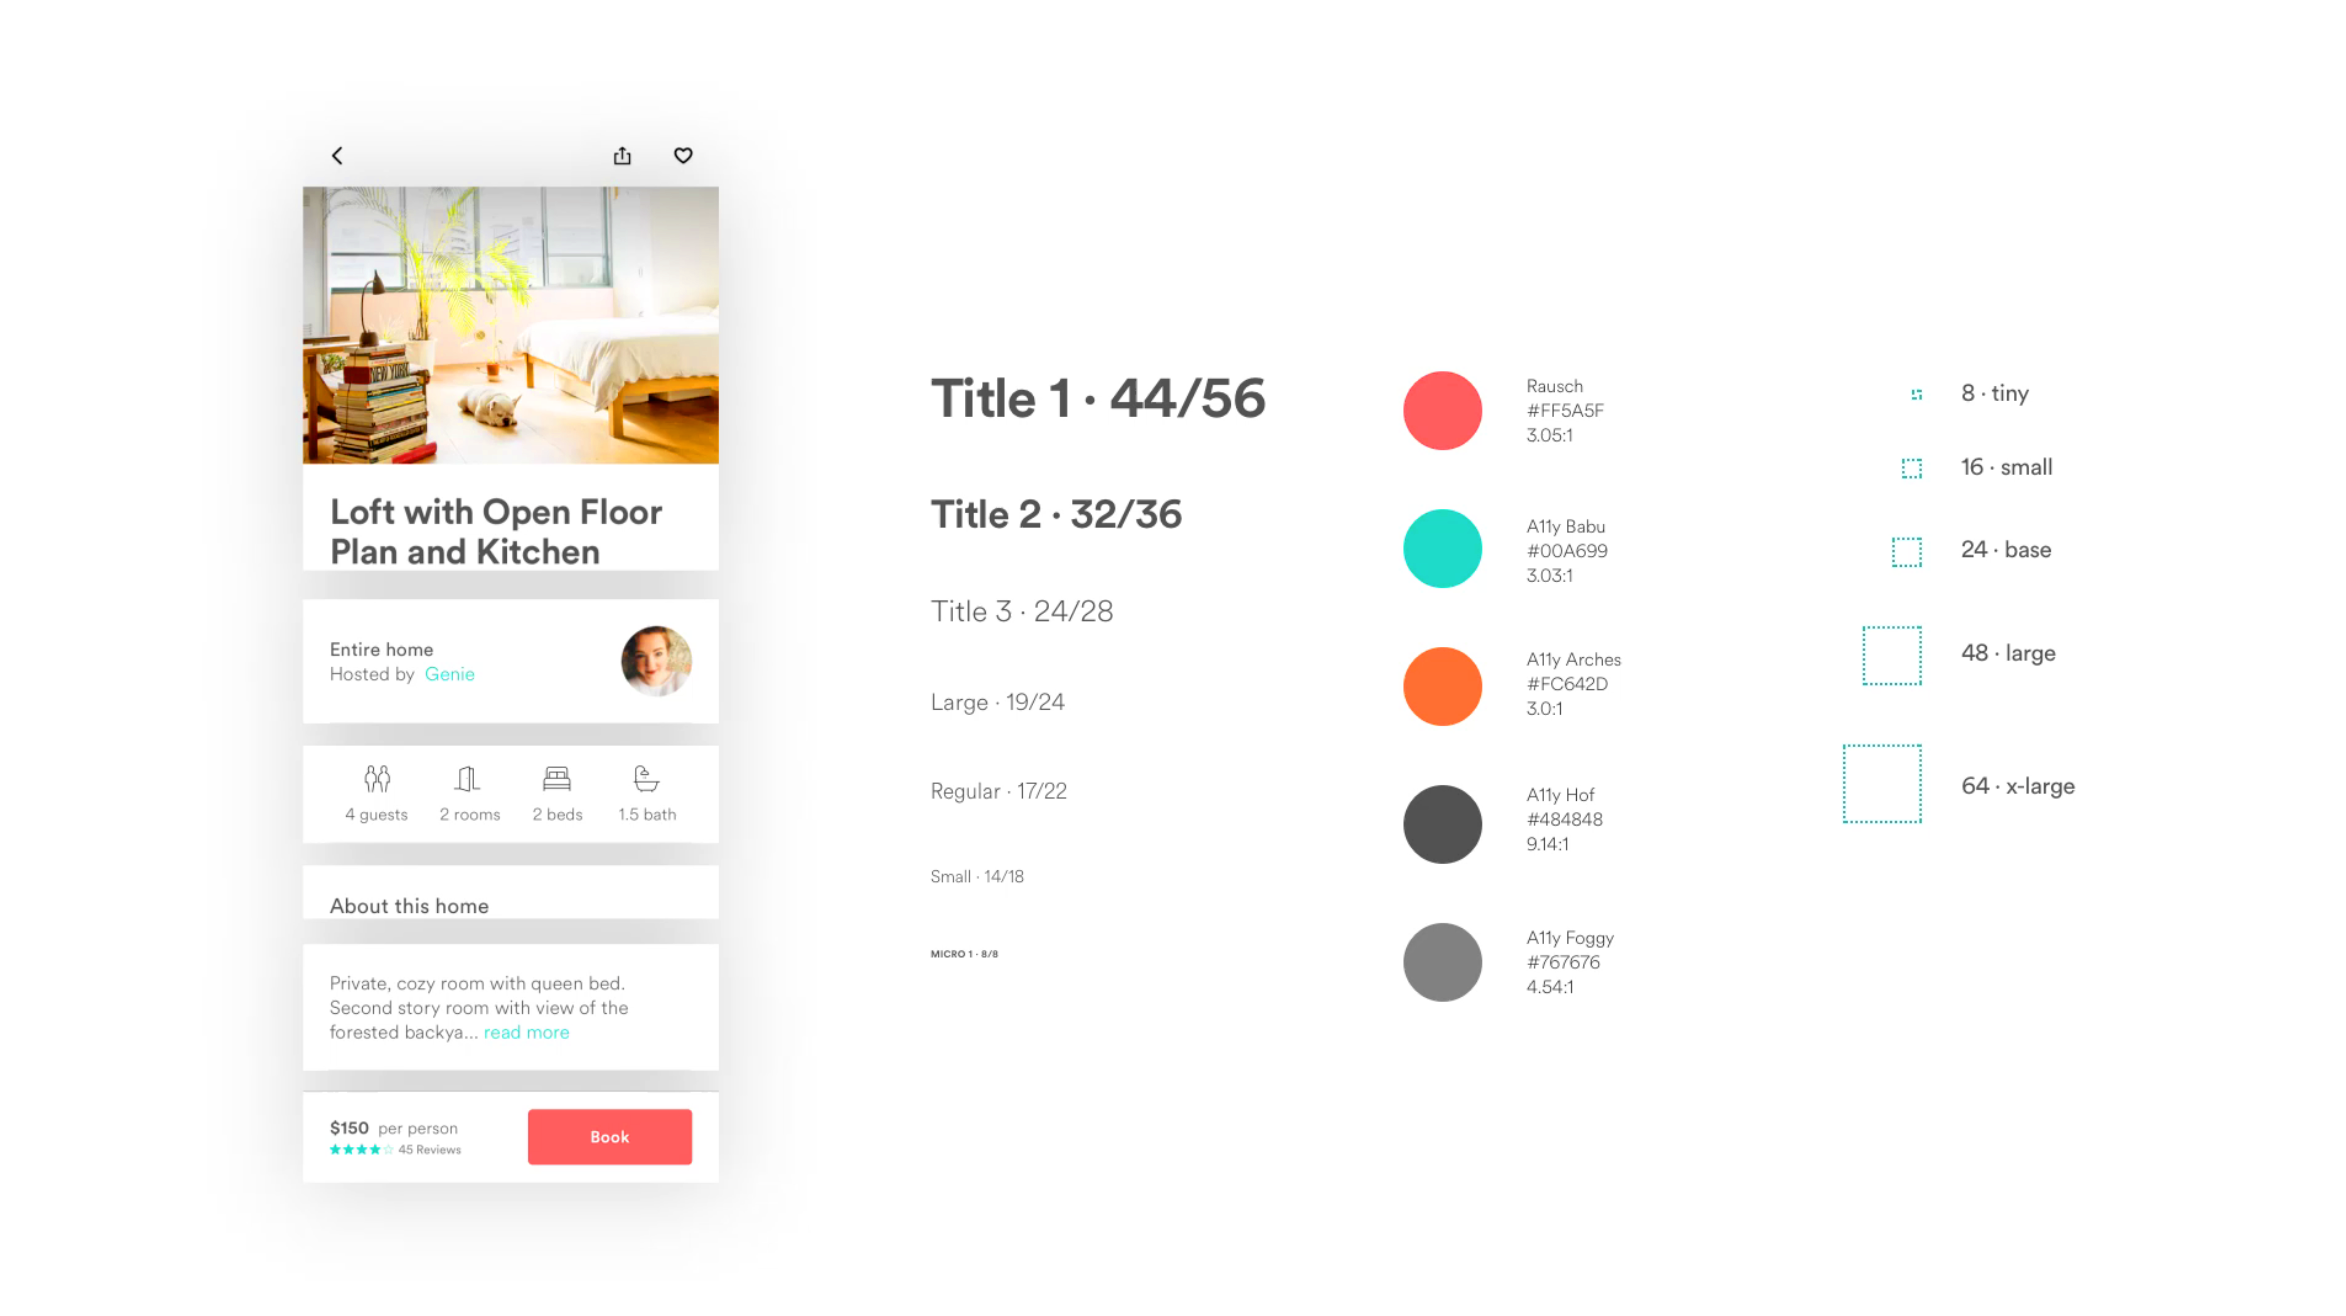 UI components from Airbnb's Design Language System (DLS)